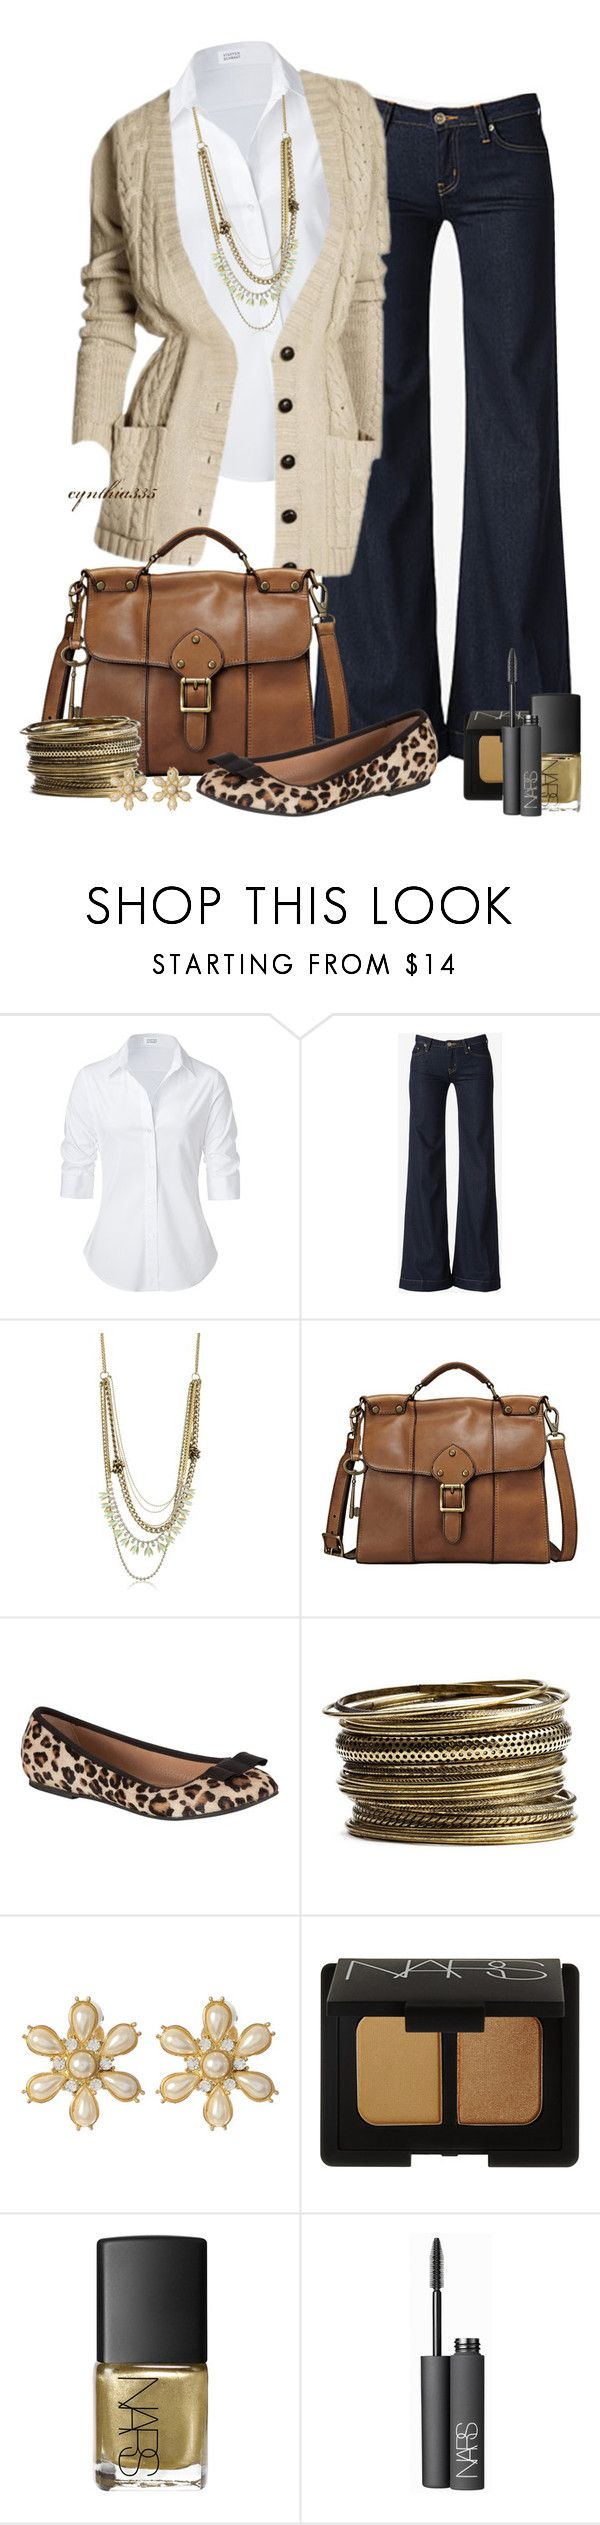 """Comfy Cardigan with Wide Leg Jeans"" by cynthia335 ❤ liked on Polyvore featuring Steffen Schraut, Hudson Jeans, Juicy Couture, FOSSIL, John Lewis, Stephan & Co., Amrita Singh and NARS Cosmetics"